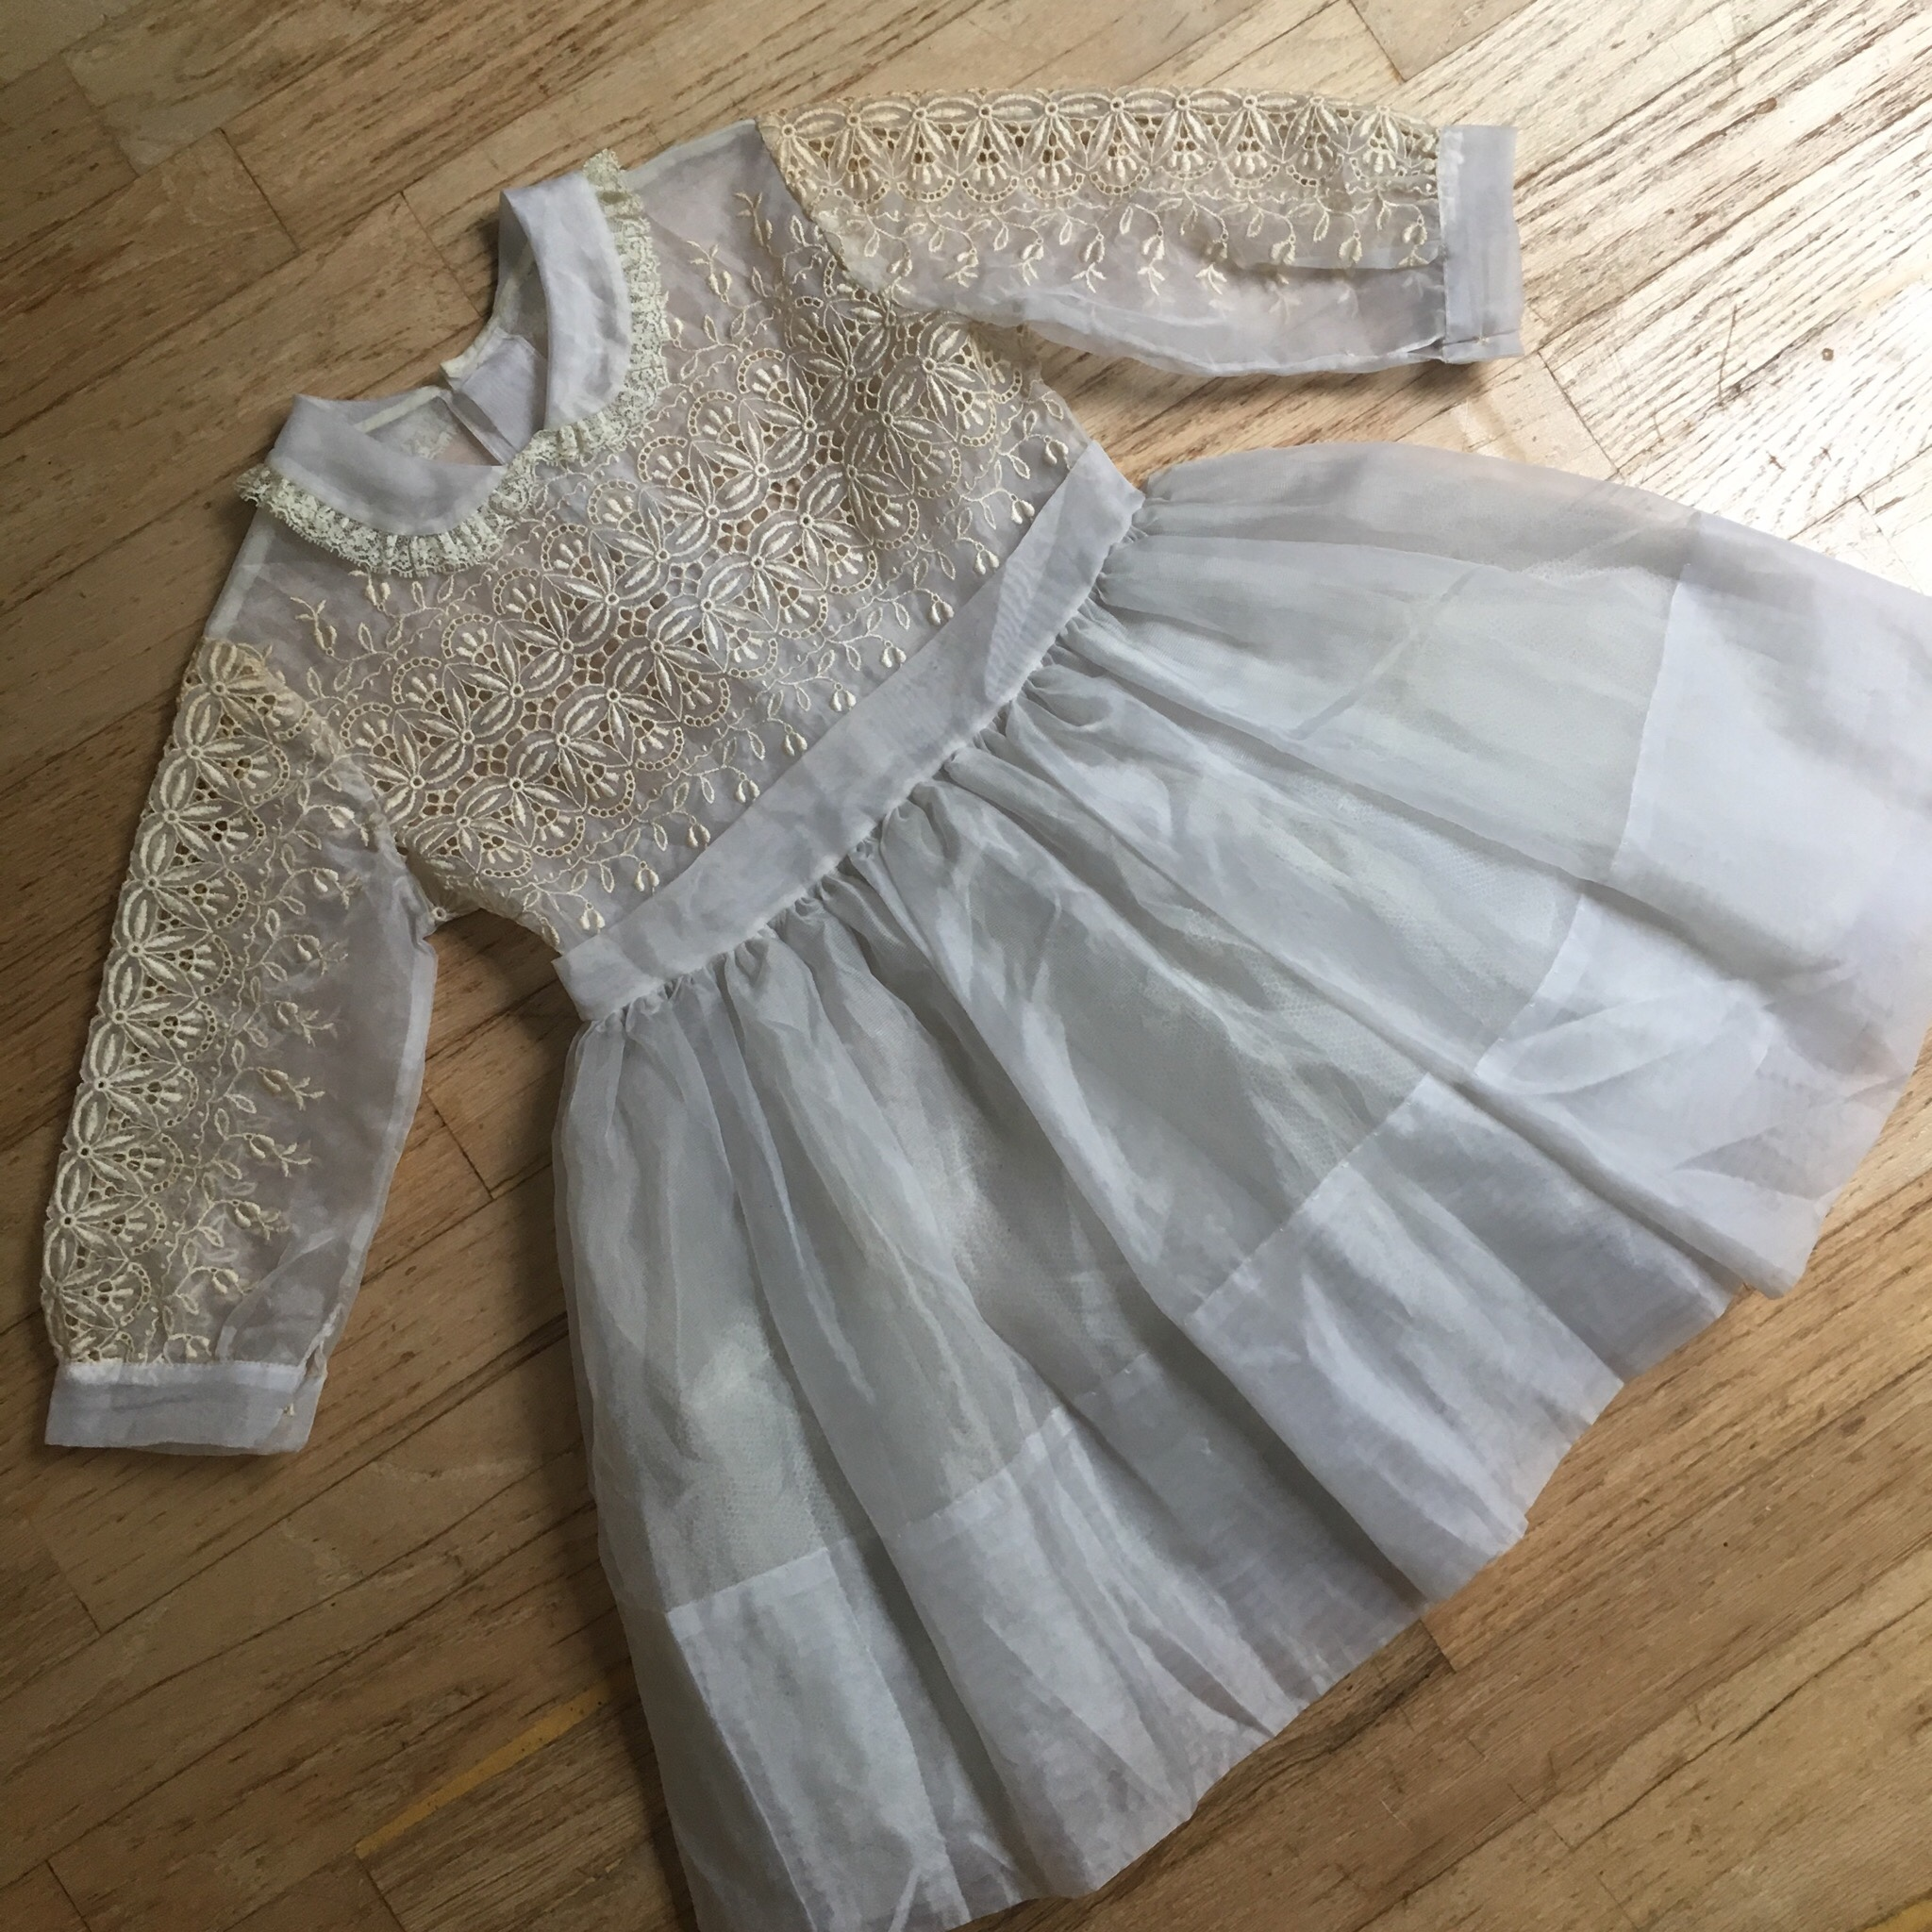 fresh styles reasonable price differently 50s 60s Vintage Sheer Lace Young Girls Dress No... - Depop